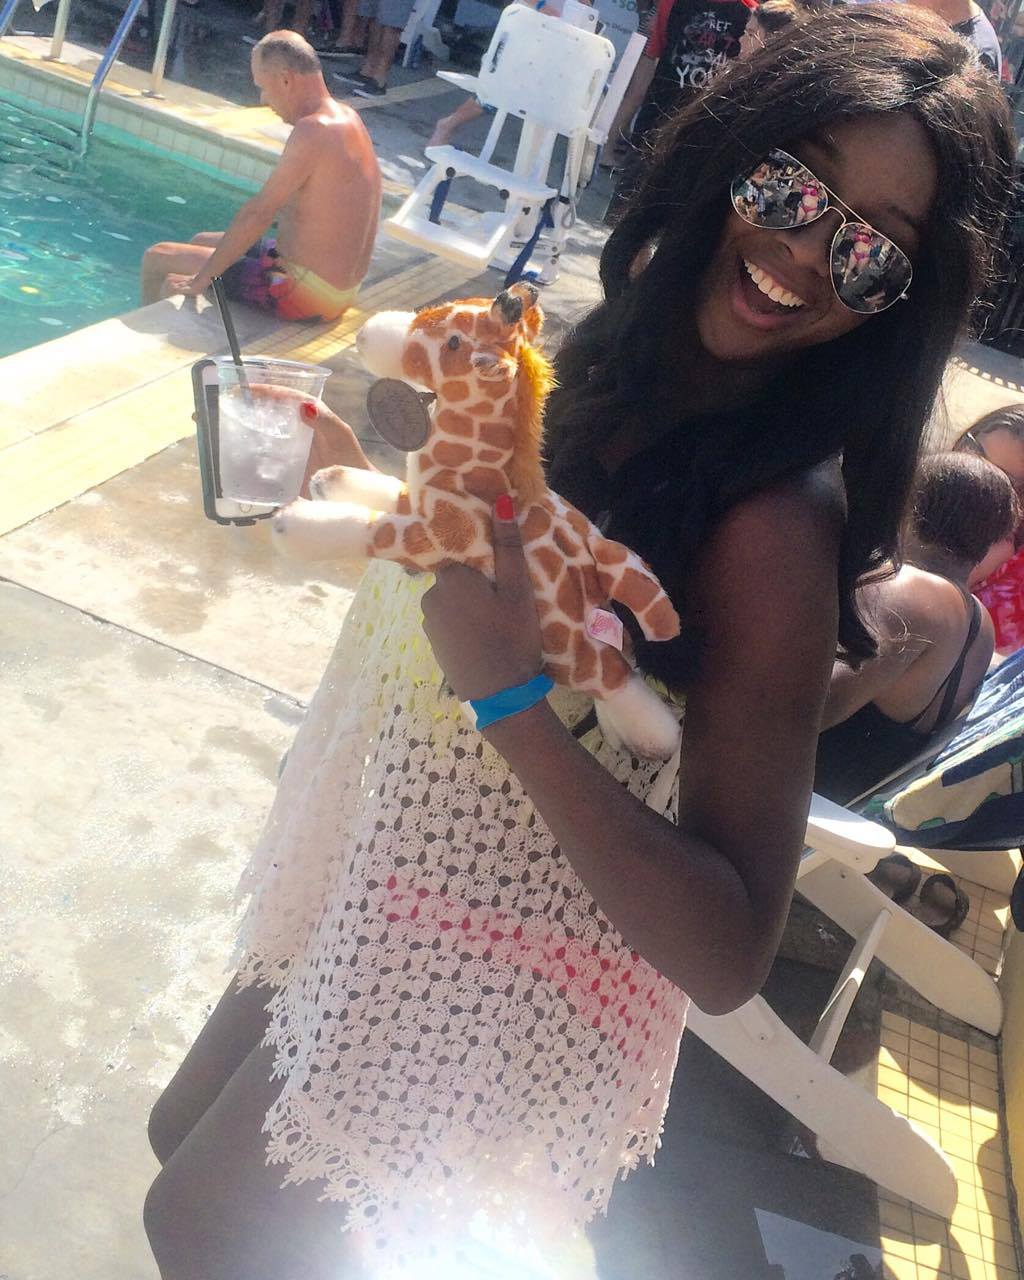 African American woman smiling poolside, wearing a white wrap, holding a glass of ice water, and a stuffed giraffe toy